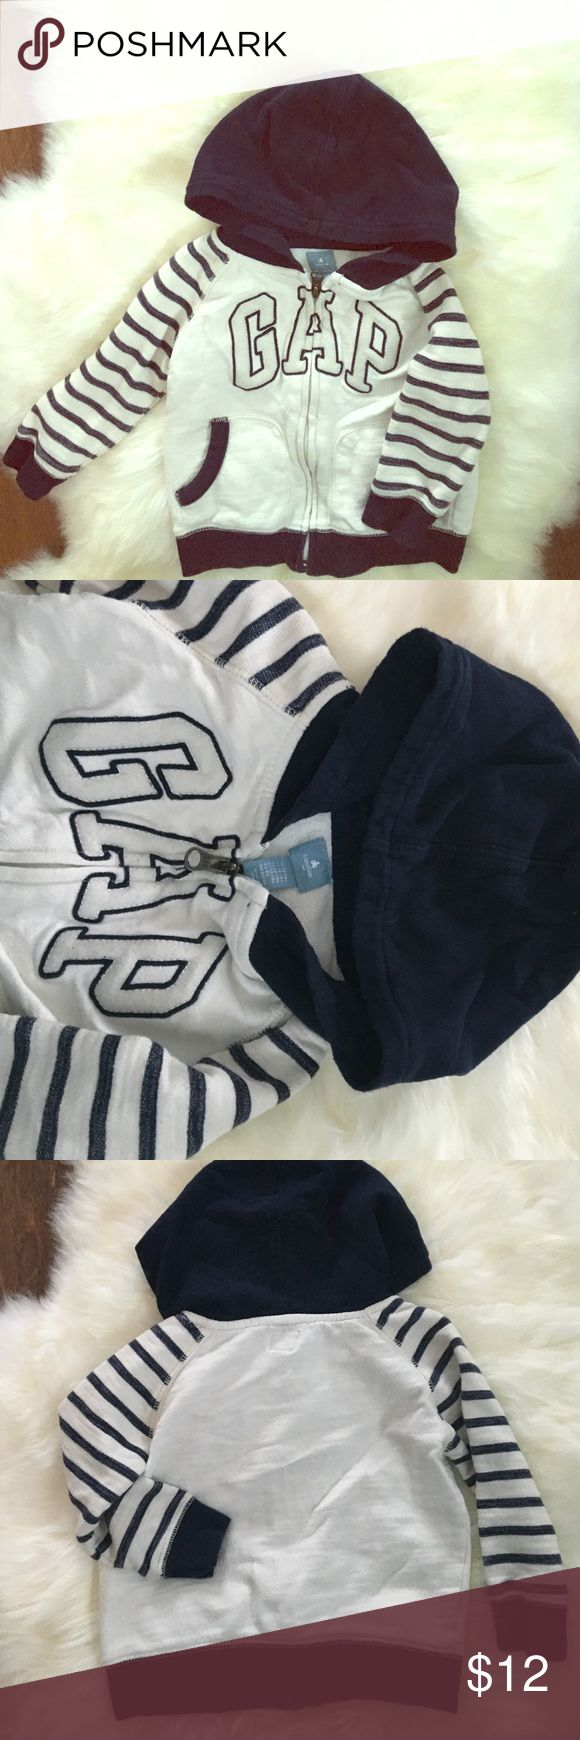 12-18 months Baby Gap zip up hoodie Baby Gap zip ups are the best!!! This one is in very lightly worn condition. Great quality. Colors are off white and navy blue. Size 12-18 months. Perfect for year round! Bundle and save!! ❄️ GAP Shirts & Tops Sweatshirts & Hoodies